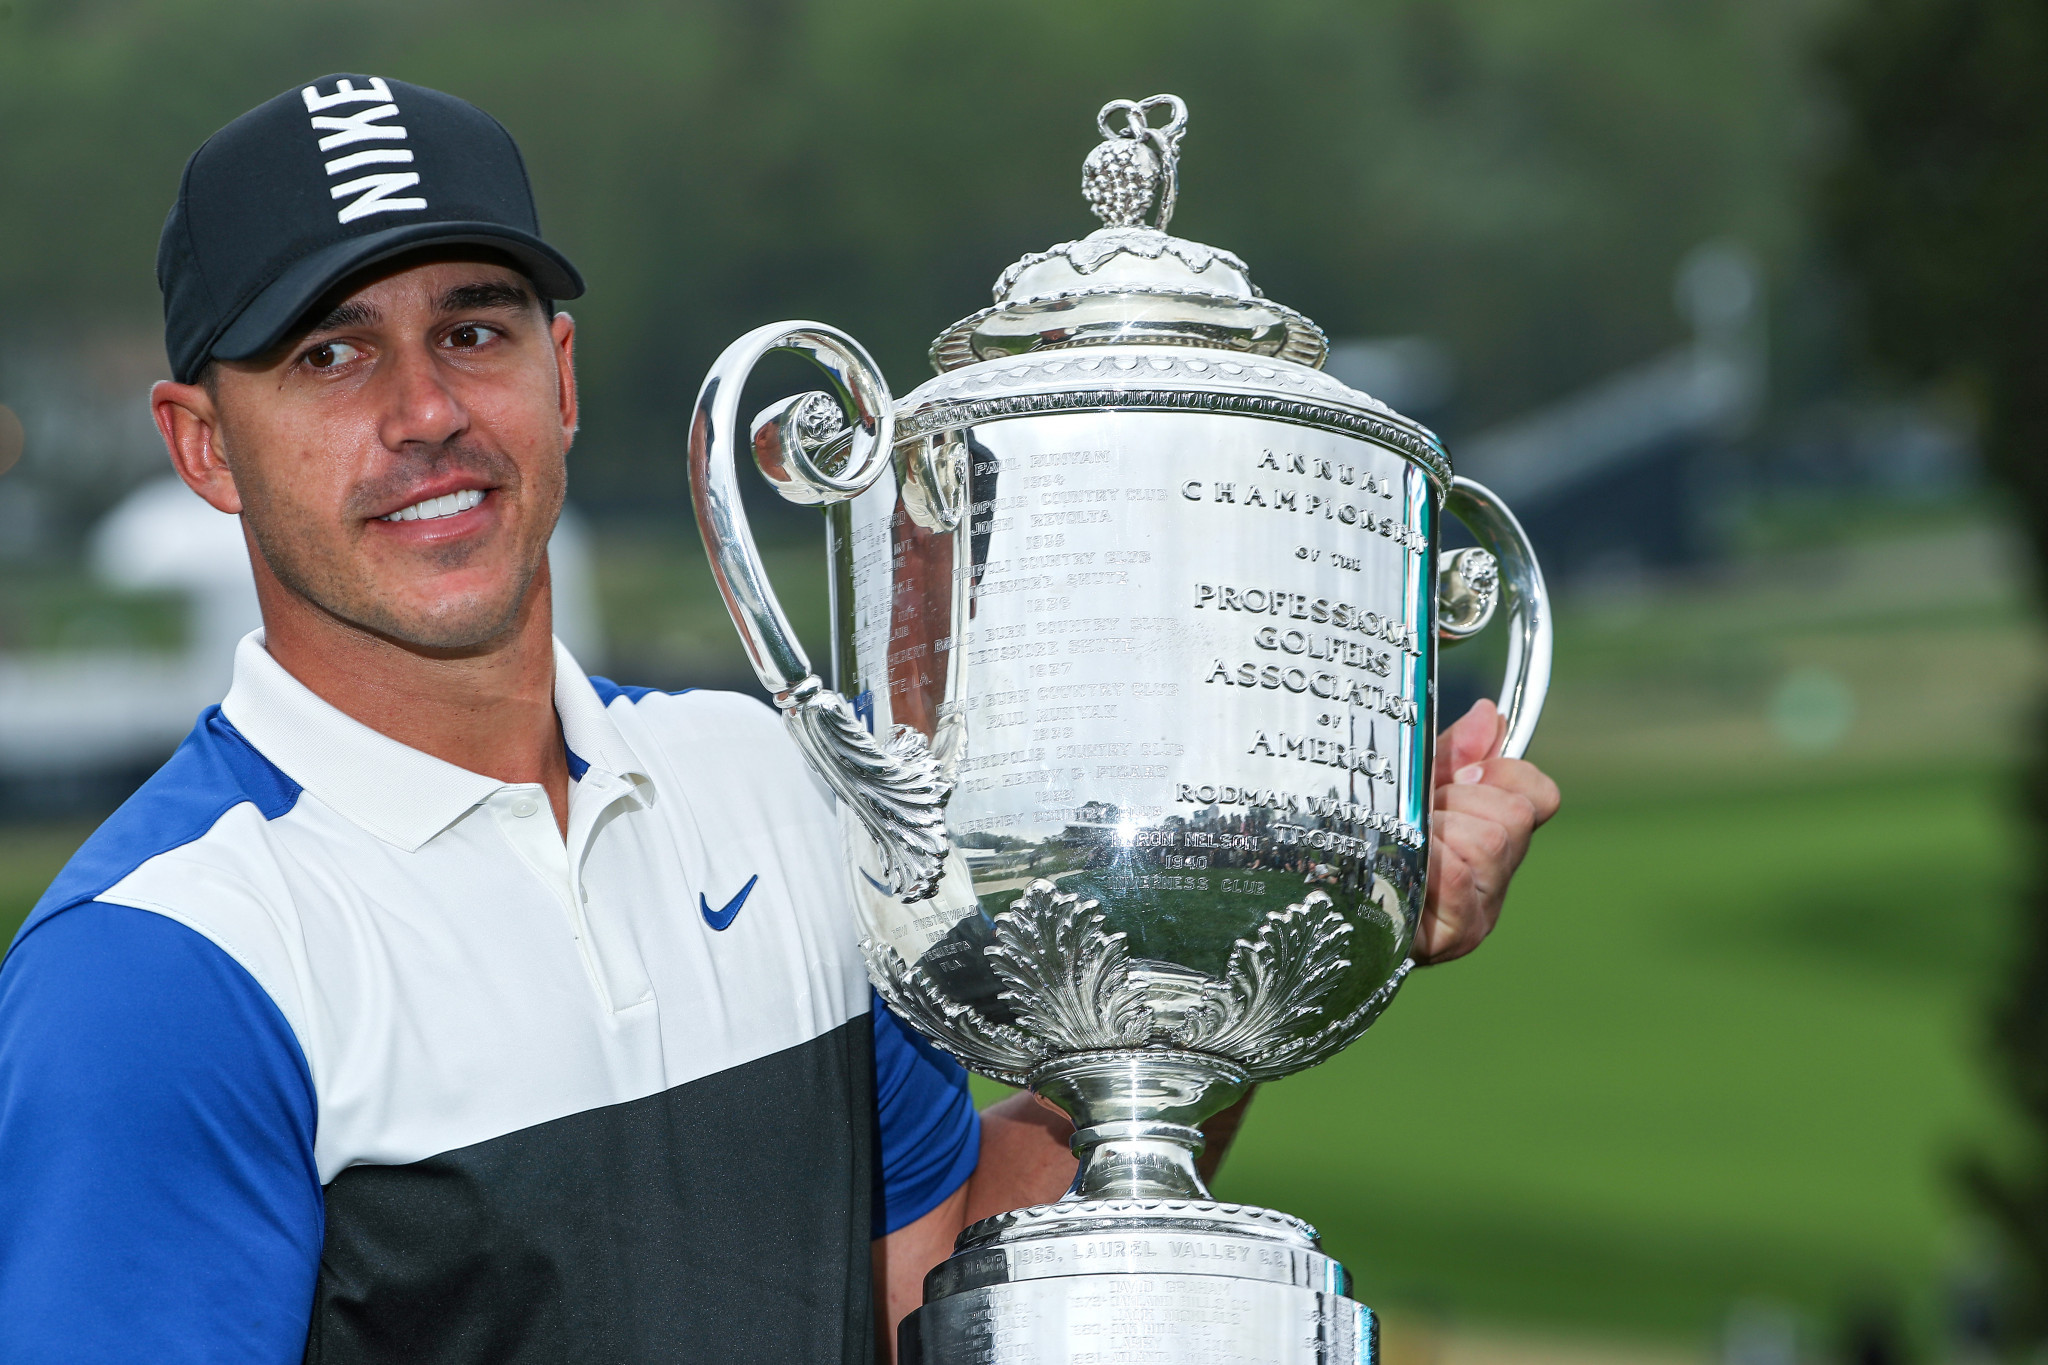 Koepka nominated for Team USA Best of May Awards after US PGA Championship victory